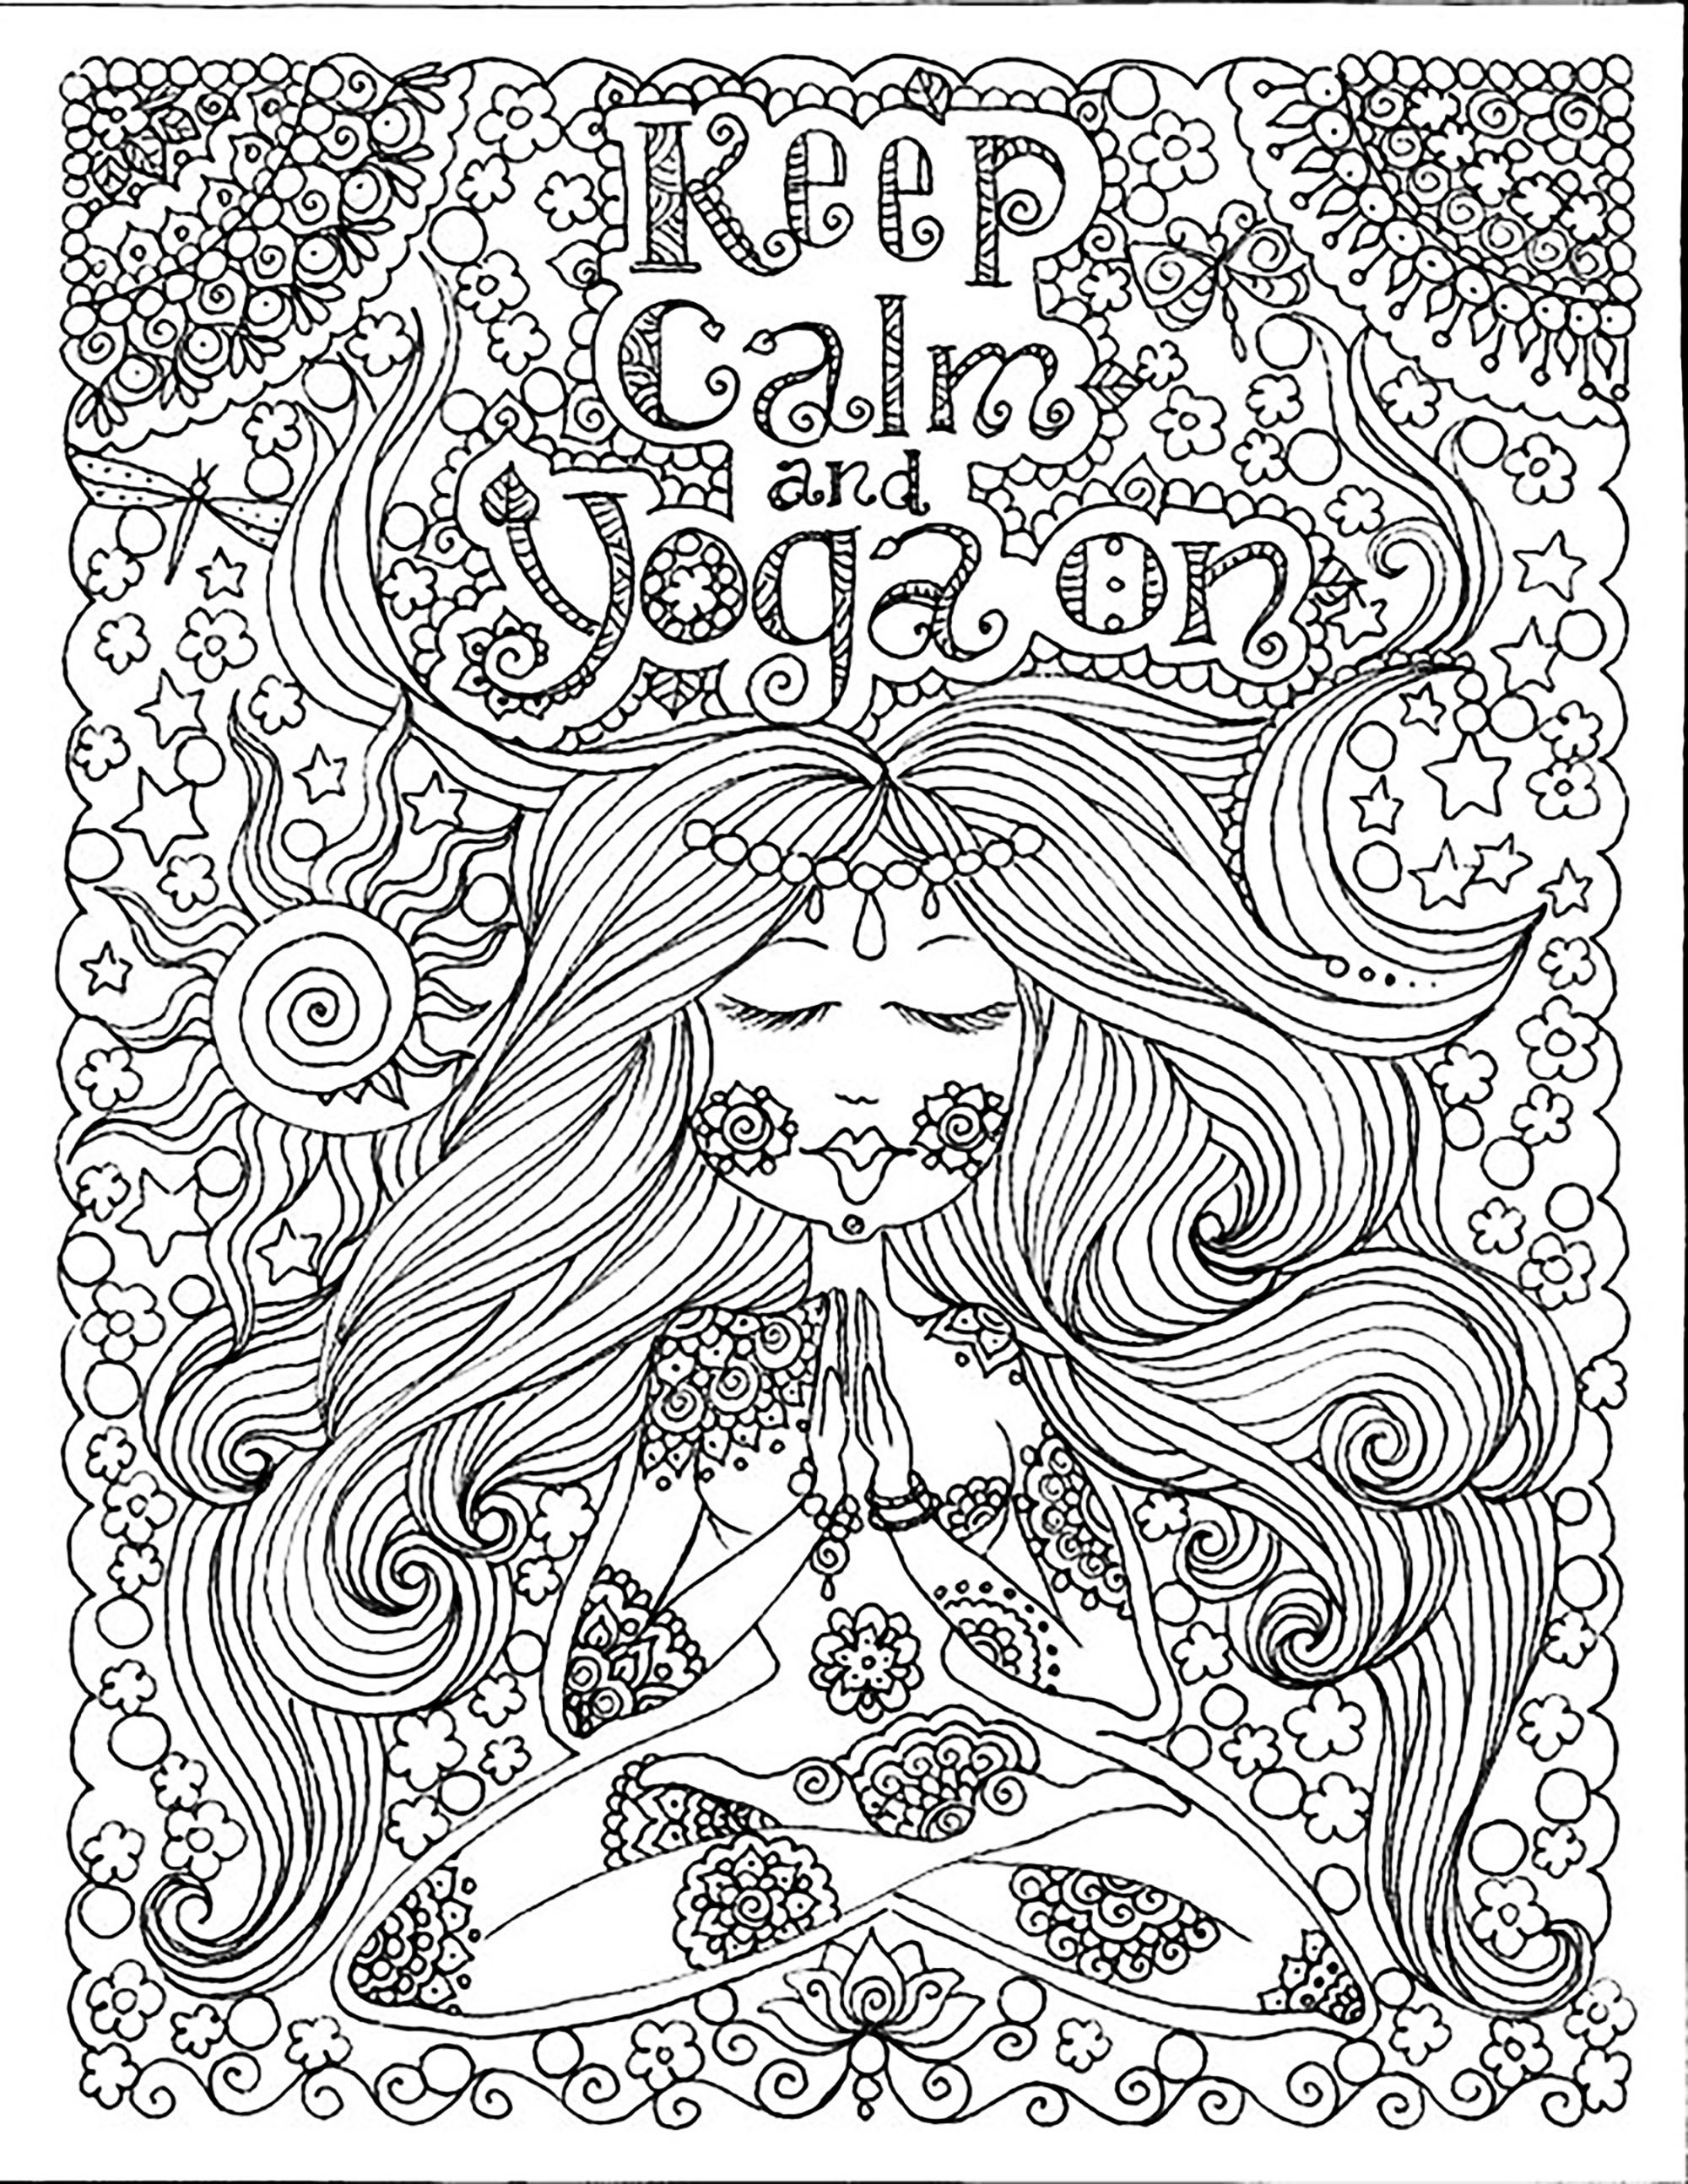 Anti stress colouring pages for adults - Keep Calm And Do Yoga From The Gallery Zen Anti Stress Artist